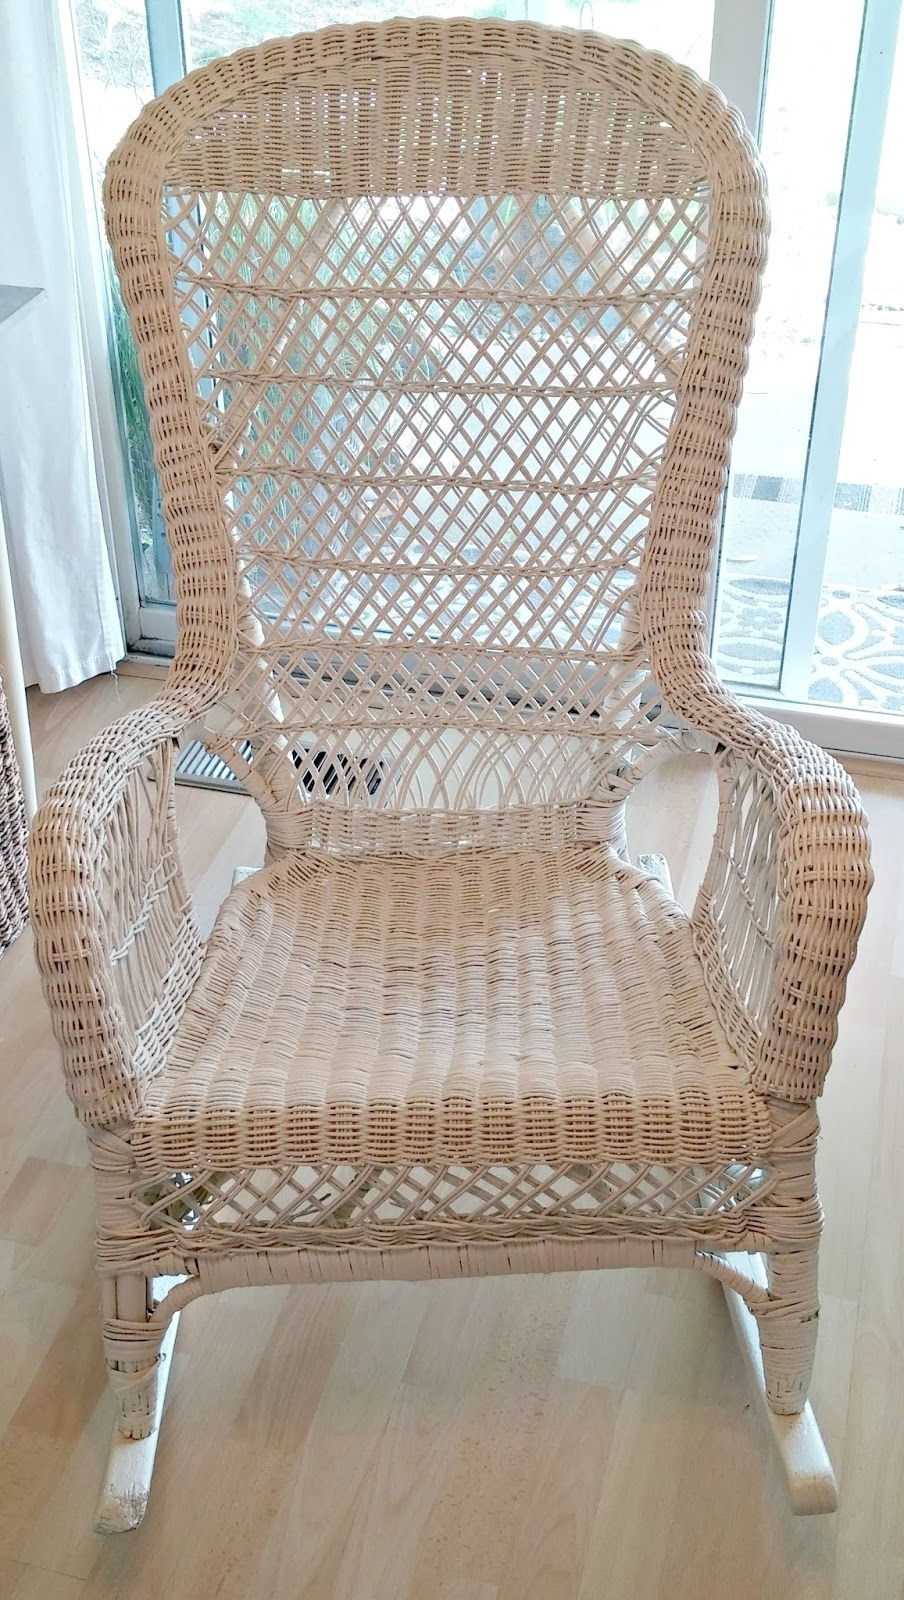 Popular Vintage Wicker Rocking Chair Makeover – Little Vintage Cottage Intended For Vintage Wicker Rocking Chairs (View 16 of 20)